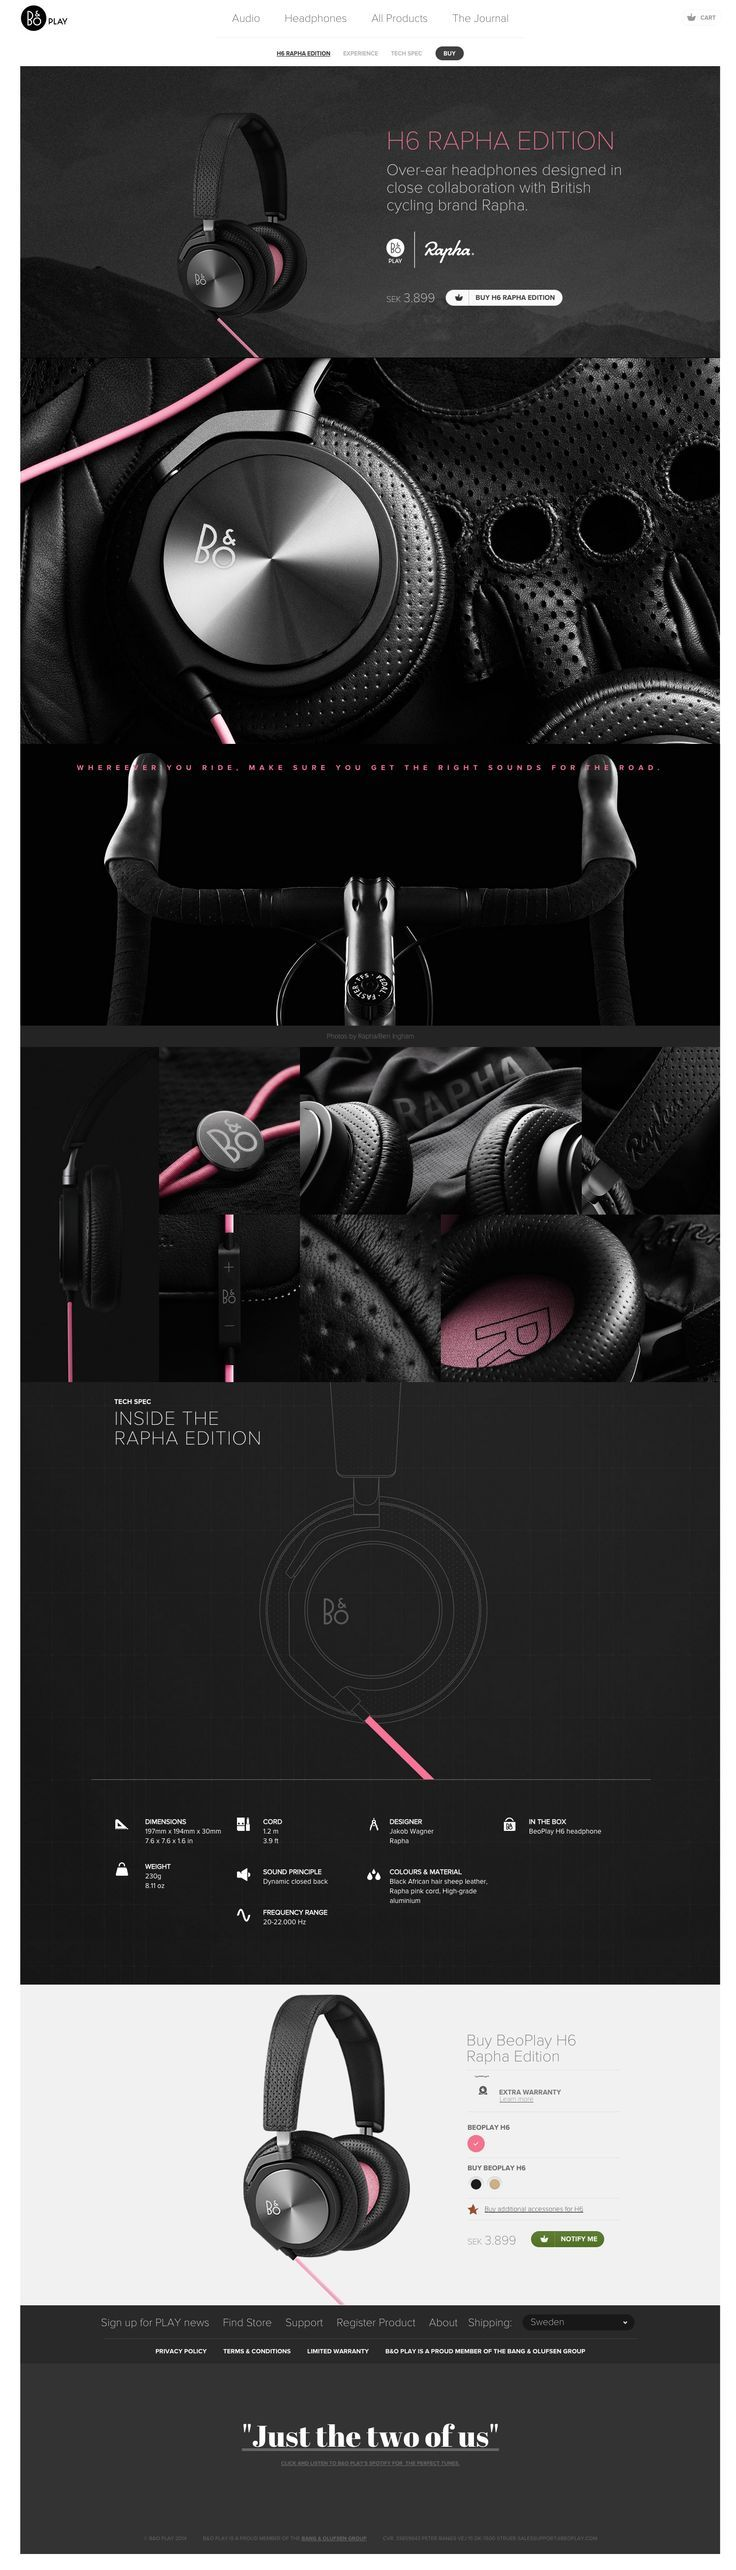 Beoplay H6 Rapha Edition by Spring/Summer